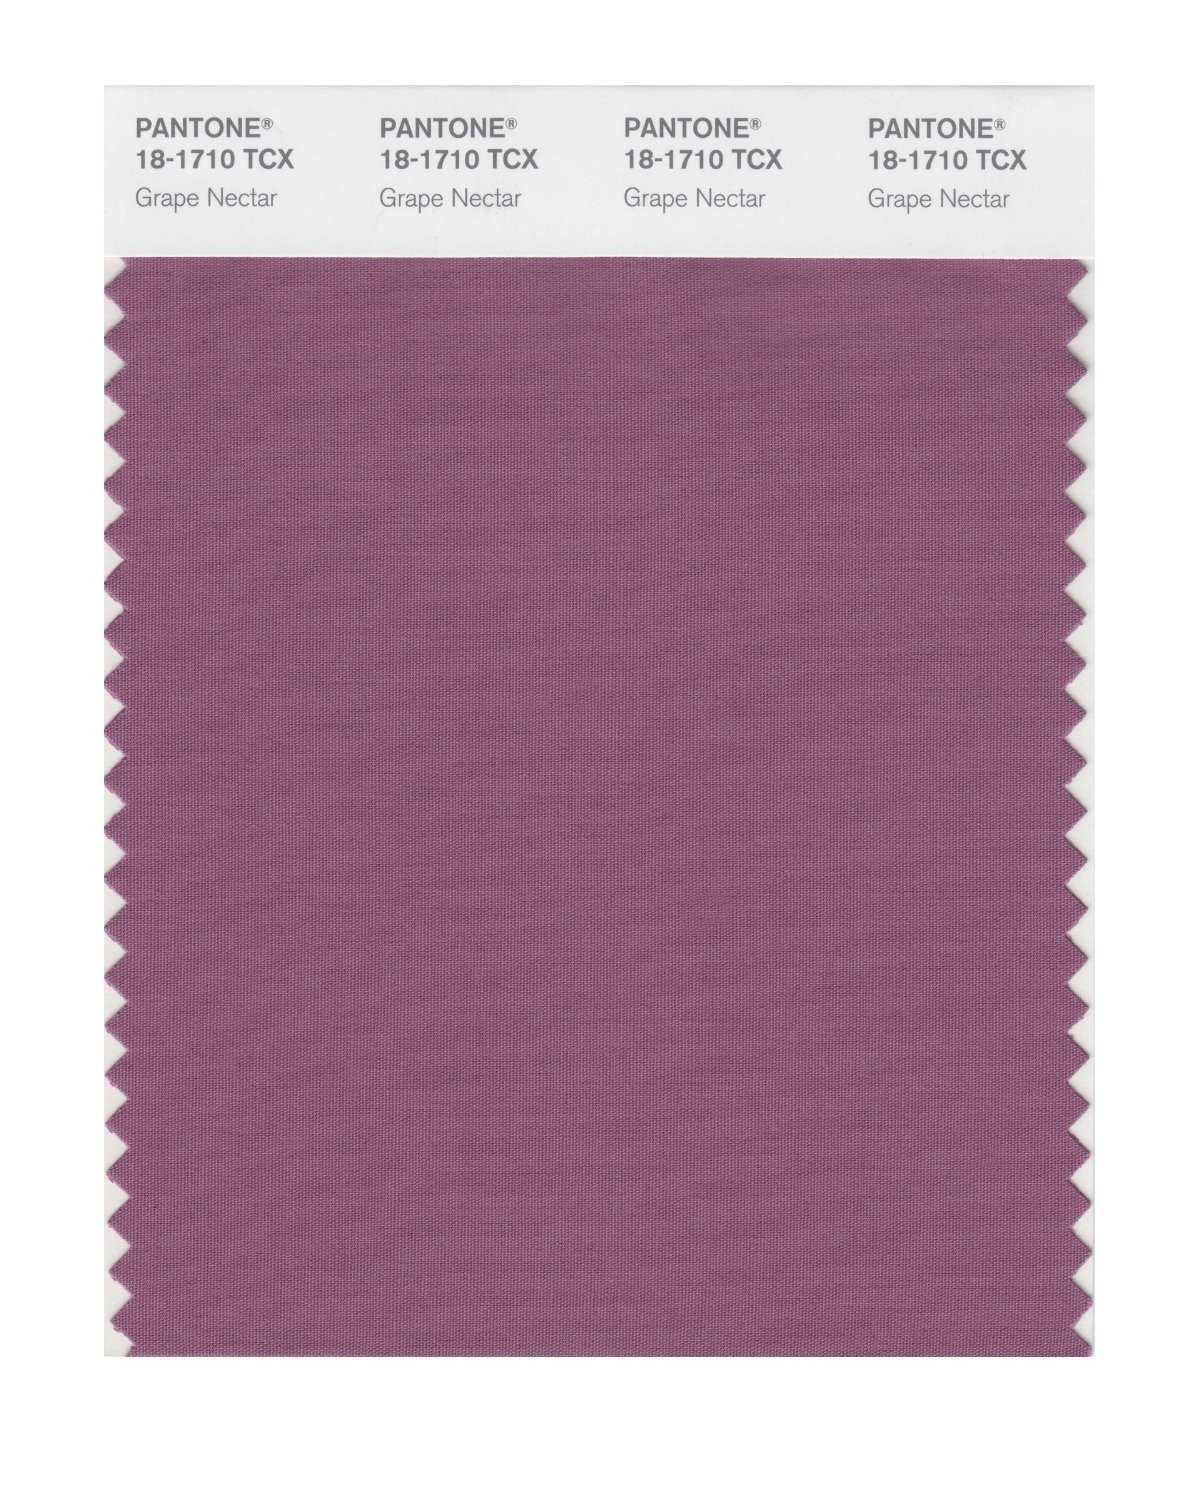 Pantone 18-1710 TCX Swatch Card Grape Nectar